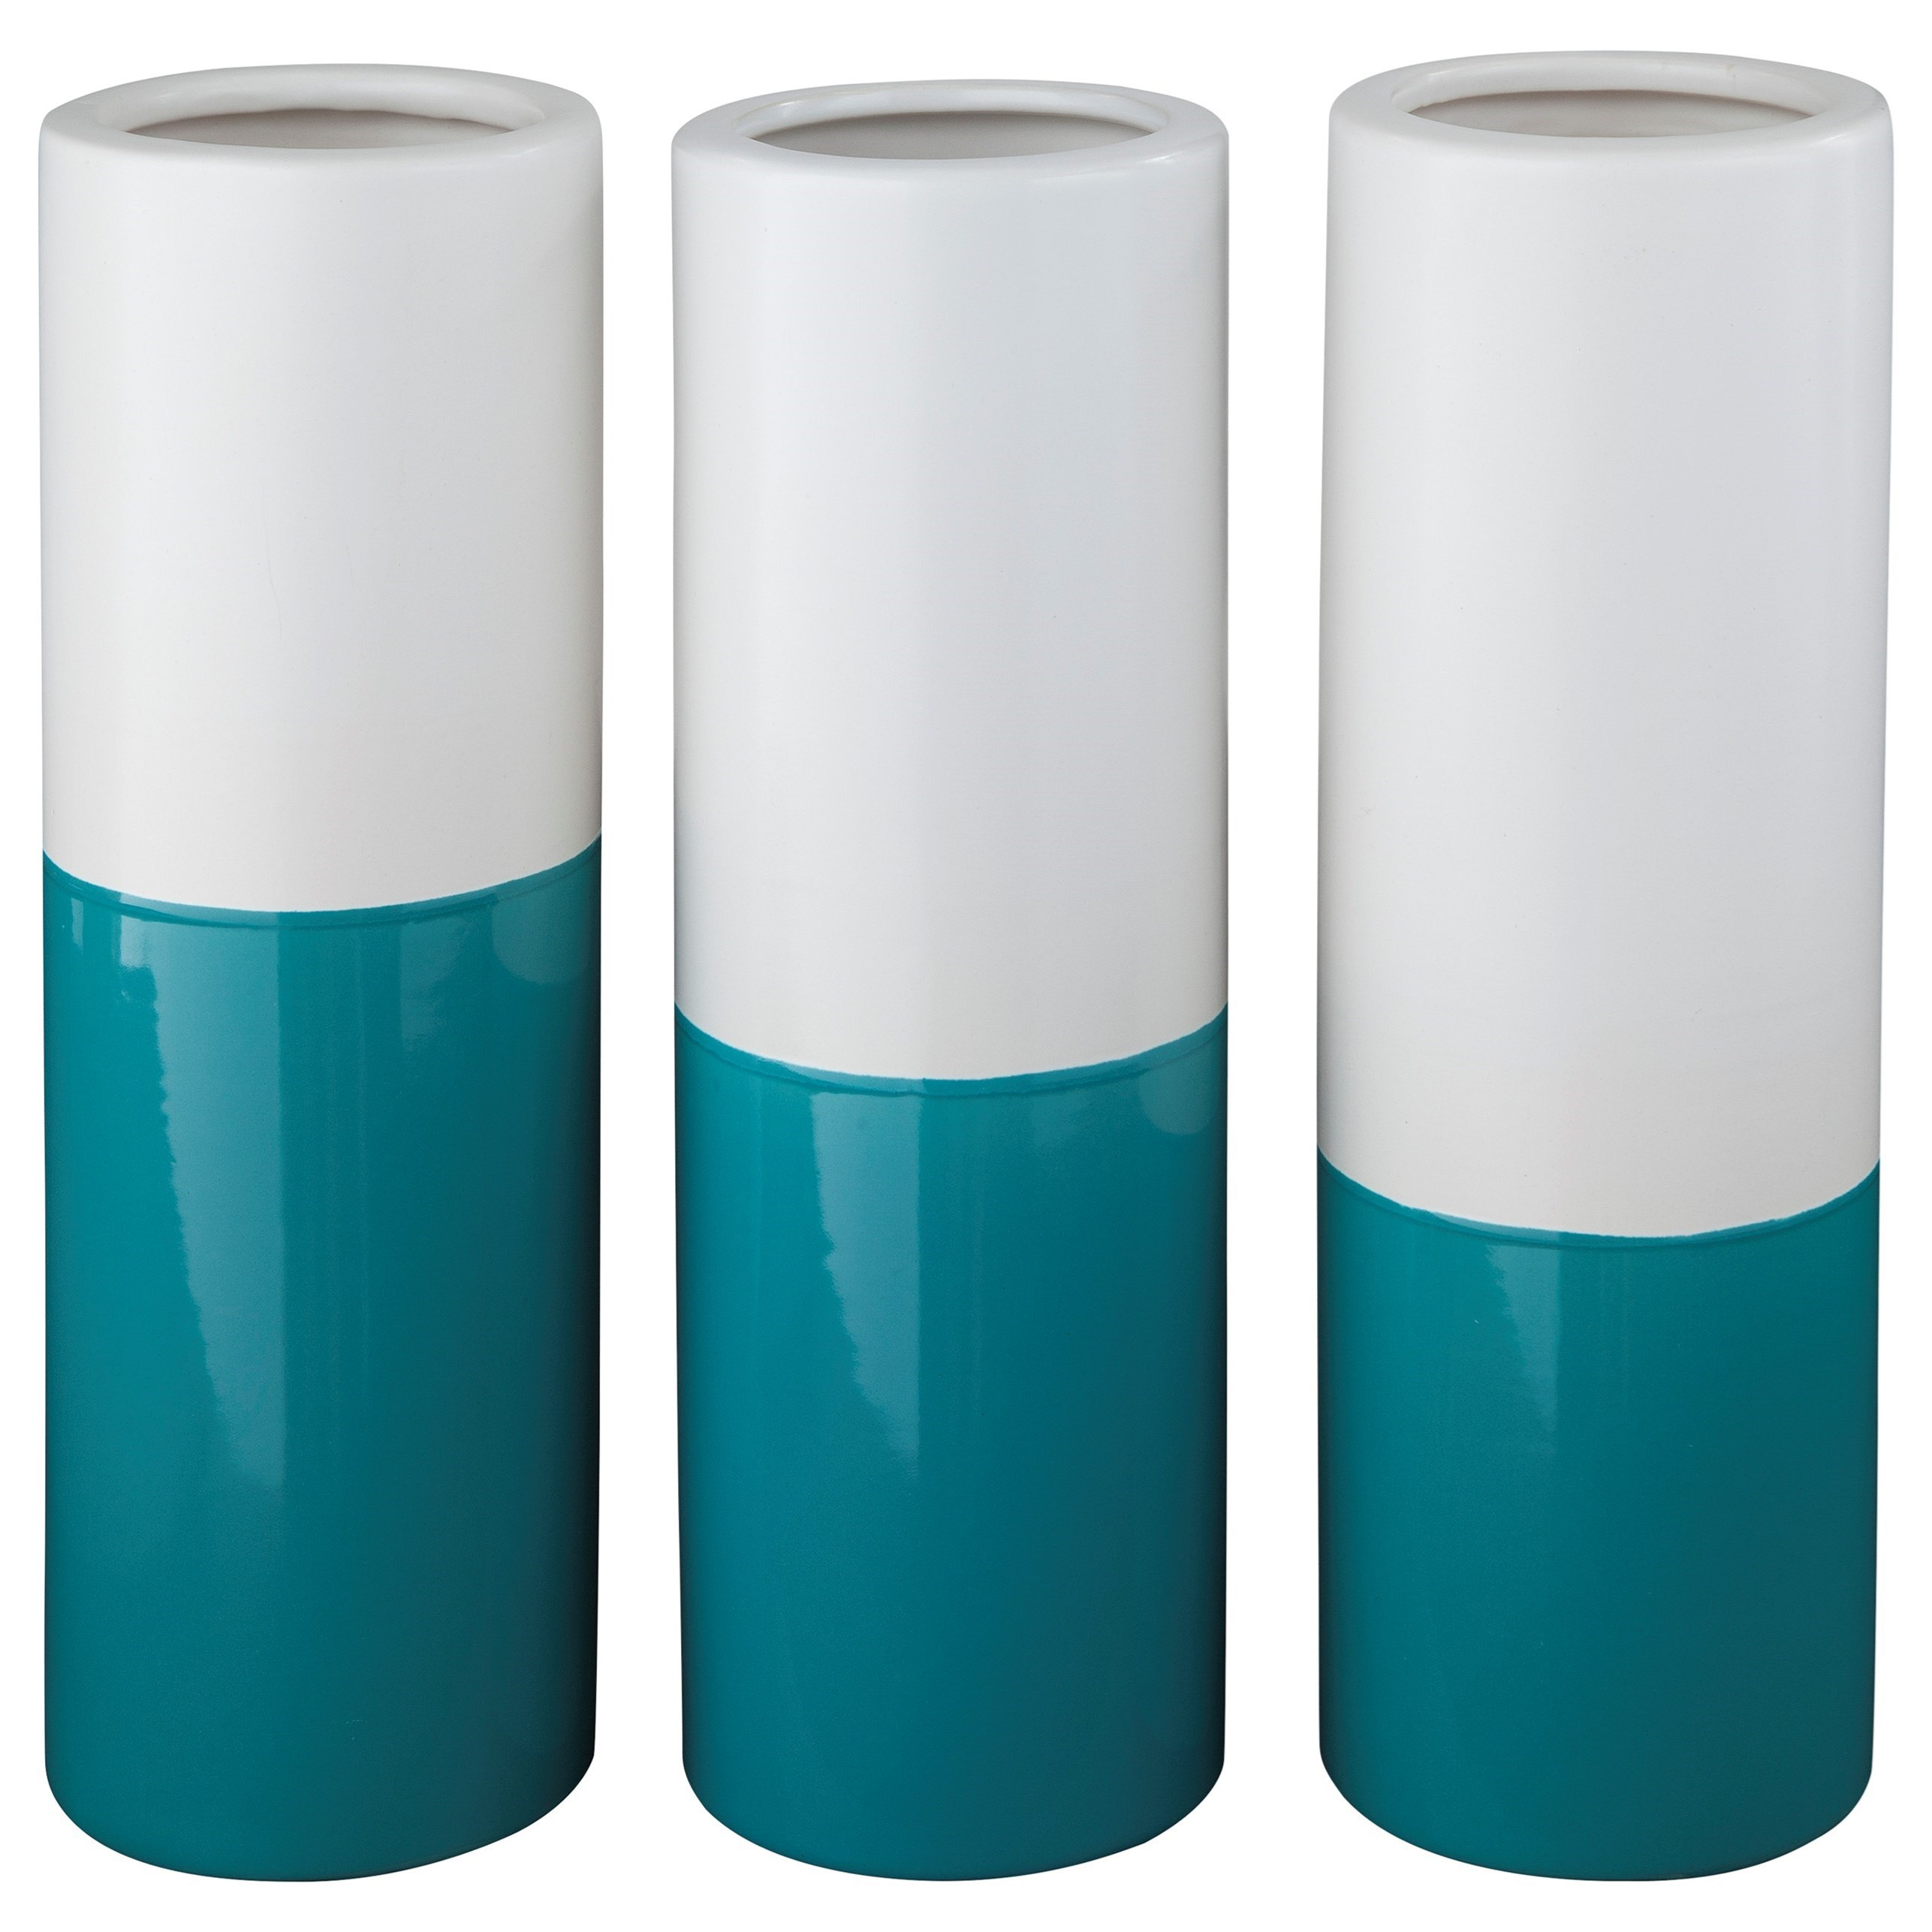 Signature Design by Ashley Accents Dalal Teal/White Vases (Set of 3) - Item Number: A2000166V